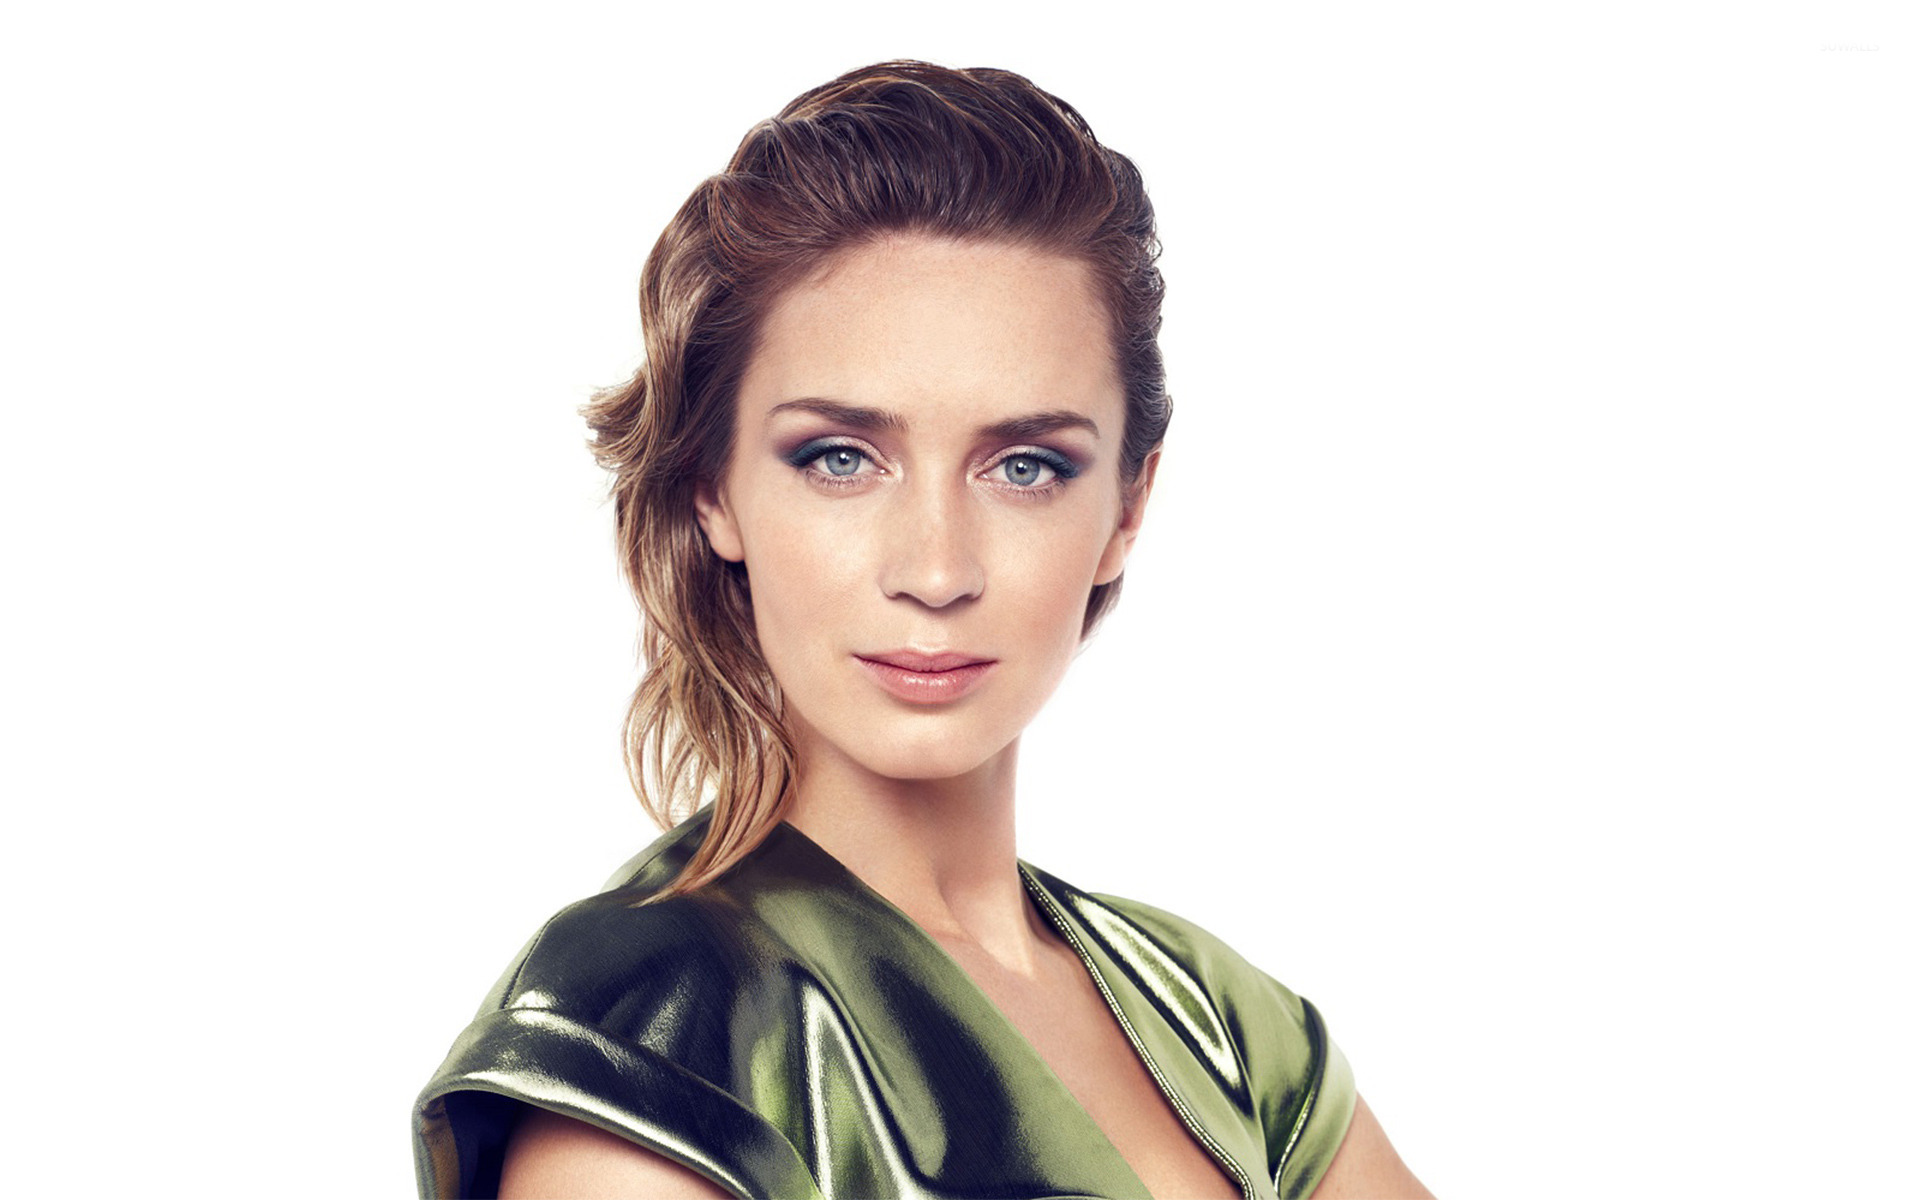 emily blunt 7 wallpaper celebrity wallpapers 32146